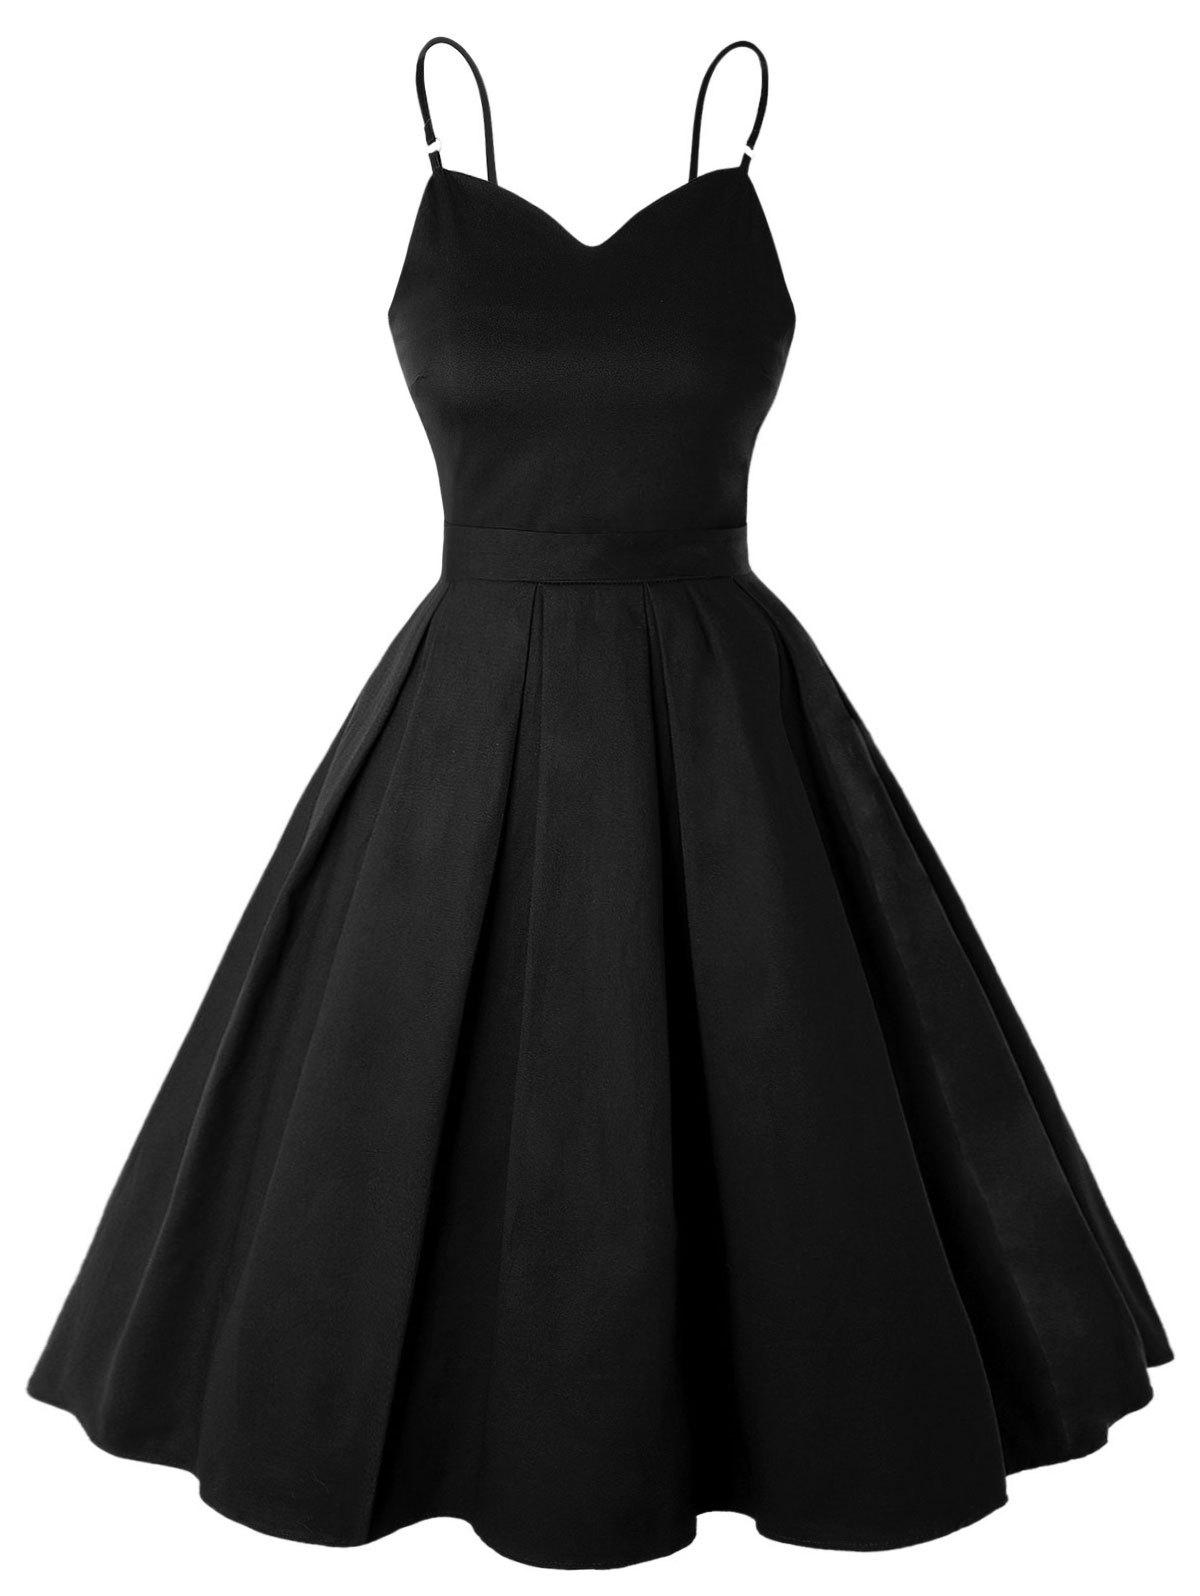 Spaghetti Strap Belted Rockabilly Style Vintage Dress - BLACK M